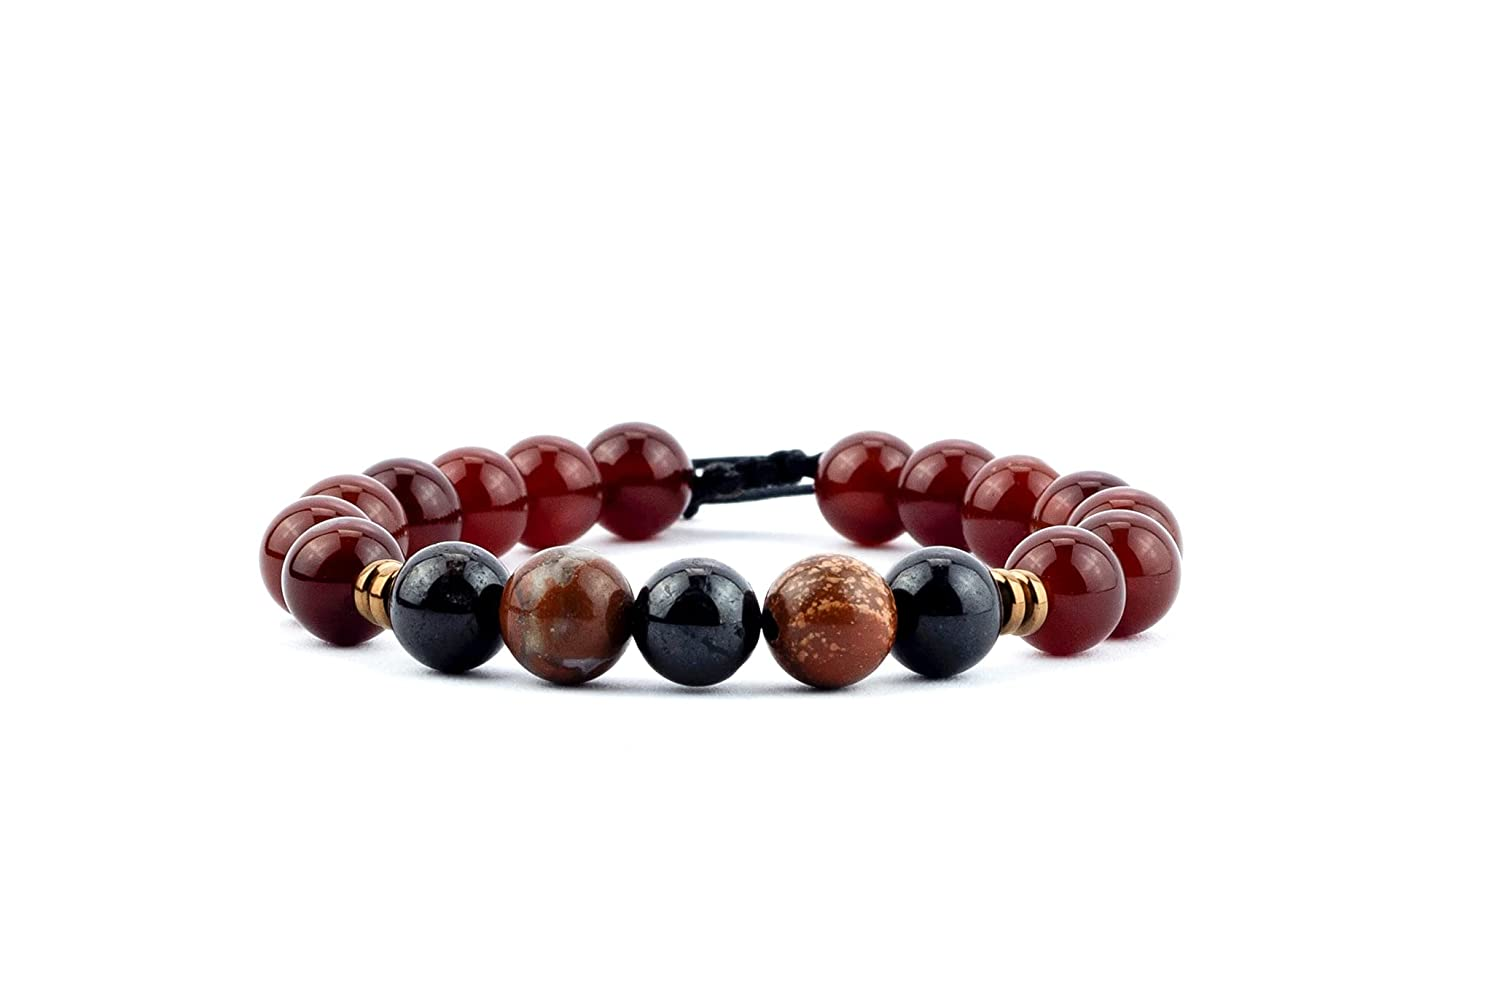 Semita Sales of SALE items from new Free shipping anywhere in the nation works Healing Crystal Bracelet - Gemstone Jewelry Beaded Chakra